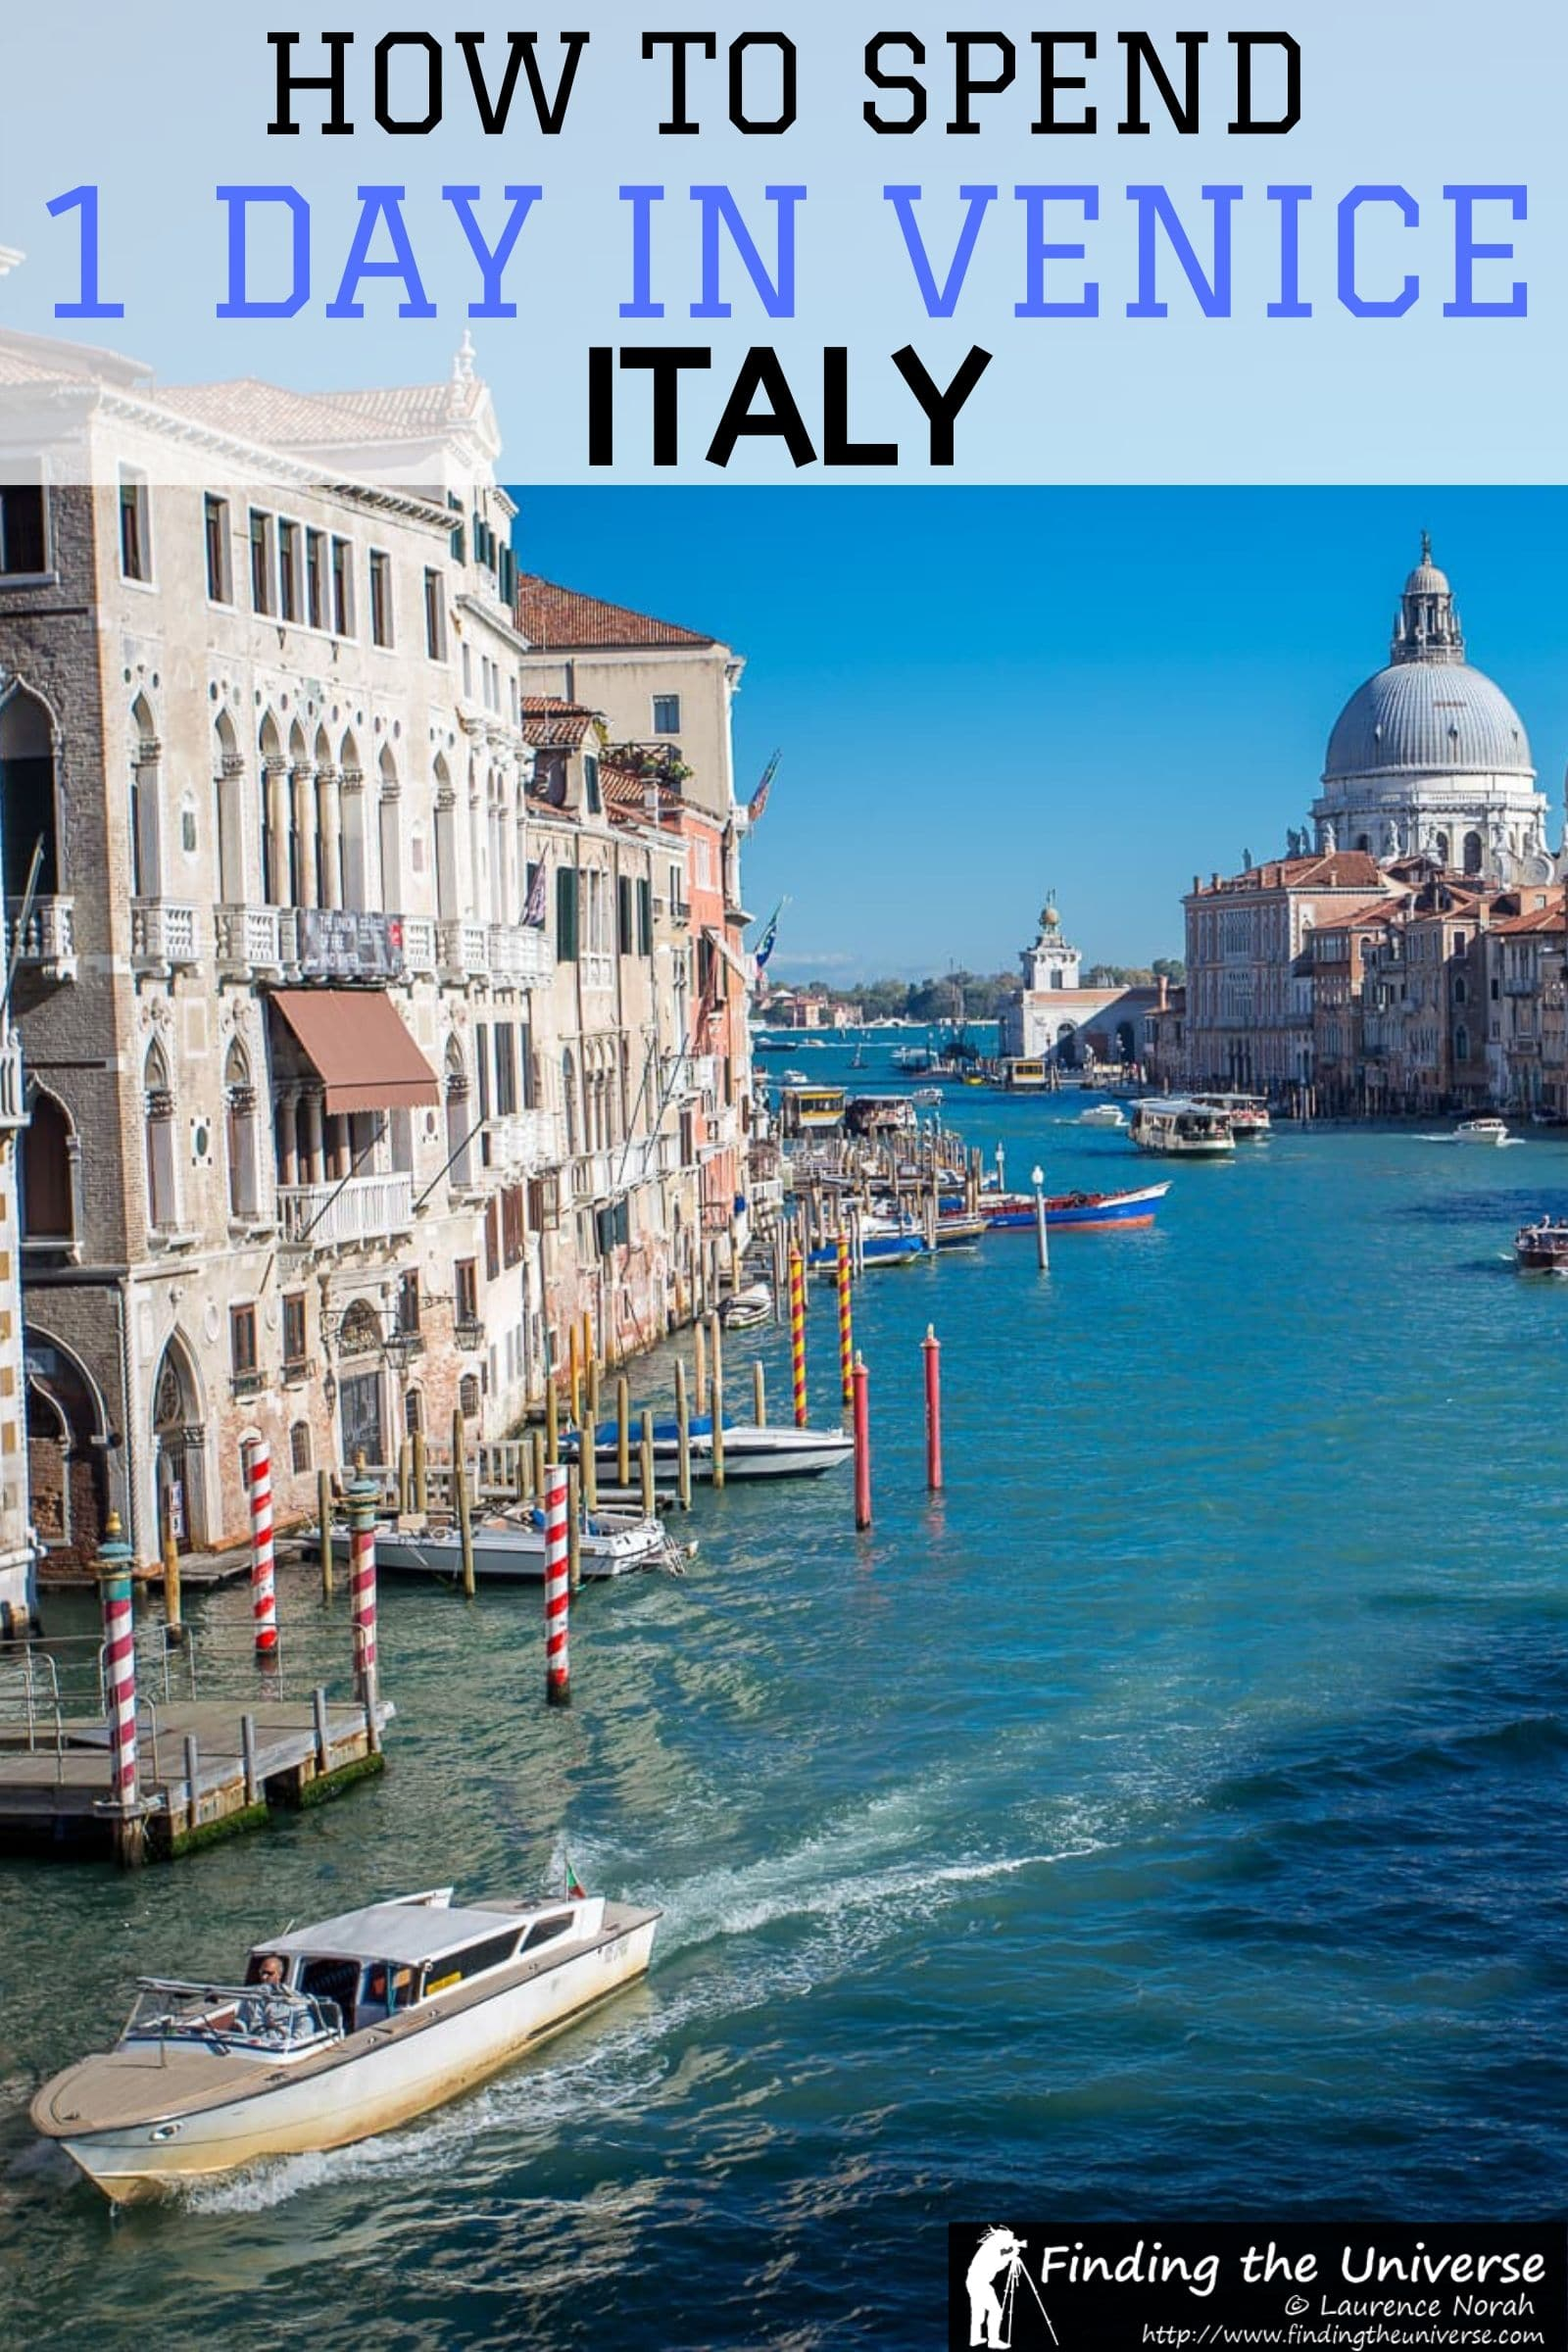 Italy's Venice - one of the worlds most amazing cities. This guide tells you everything you need to know to plan the perfect one day in Venice